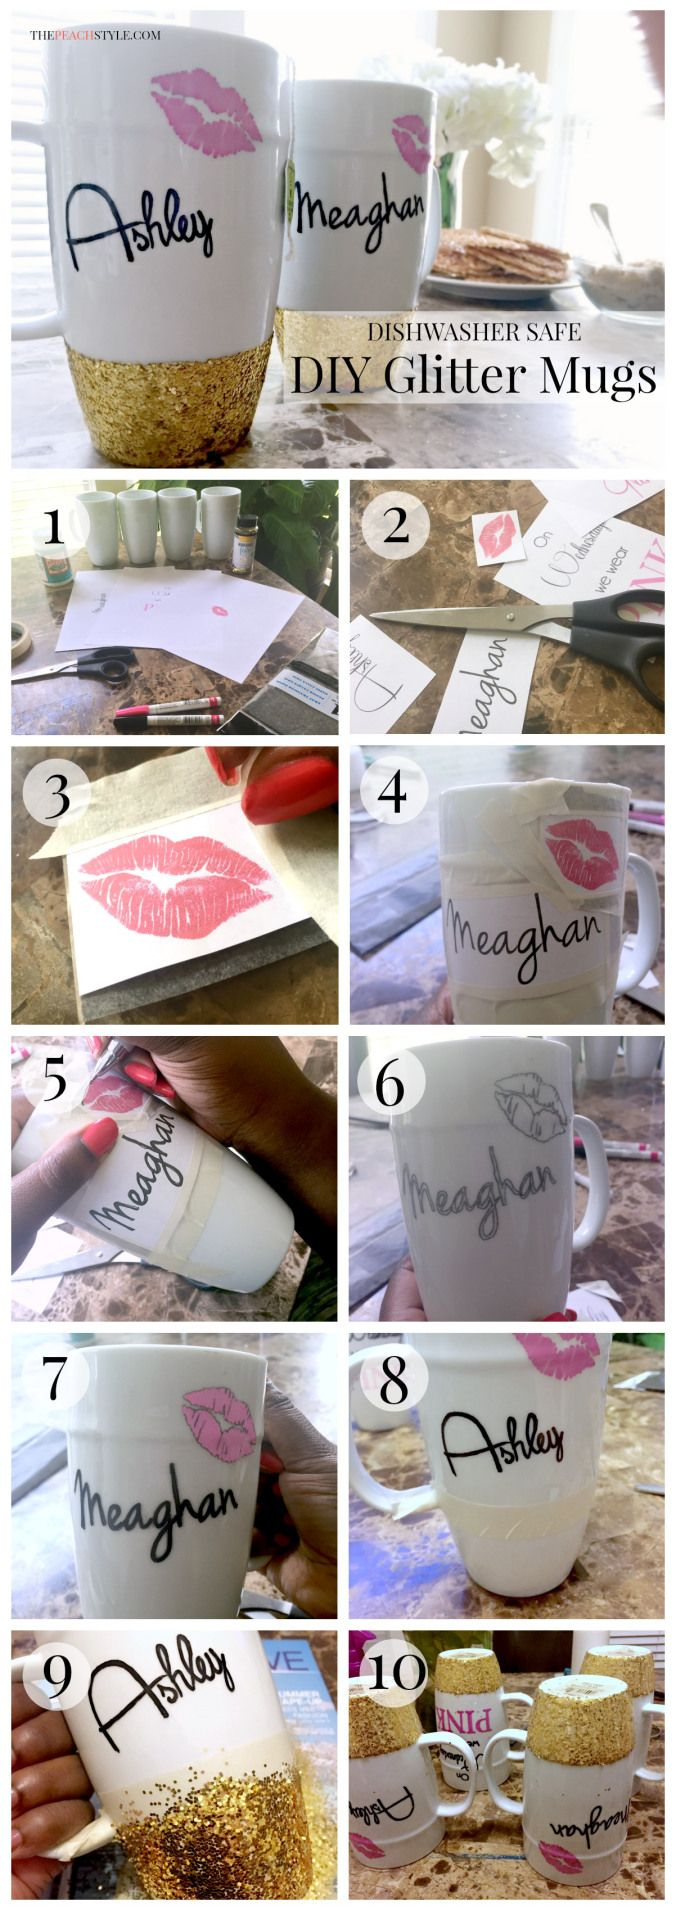 180 best DIY ideas images on Pinterest   T shirts, Families and ...